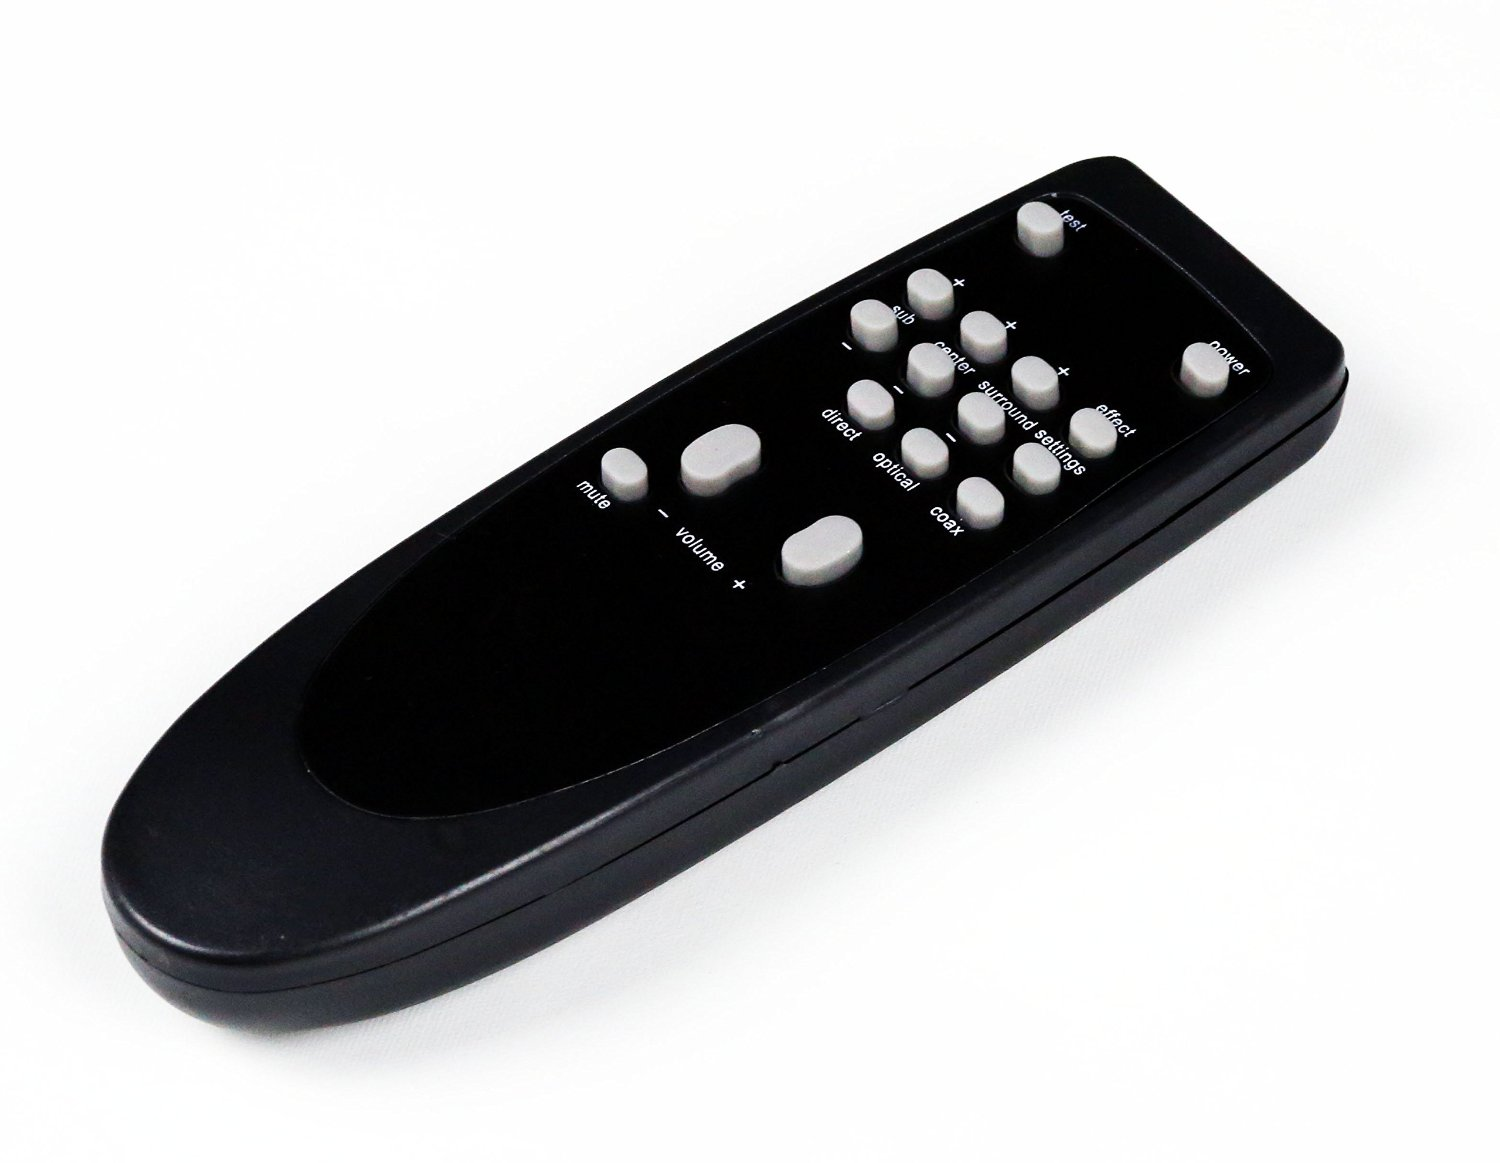 SummitLink Replacement Remote for Logitech Z-5500 Z-680 Z-5400 Z-5450 Computer Speakers